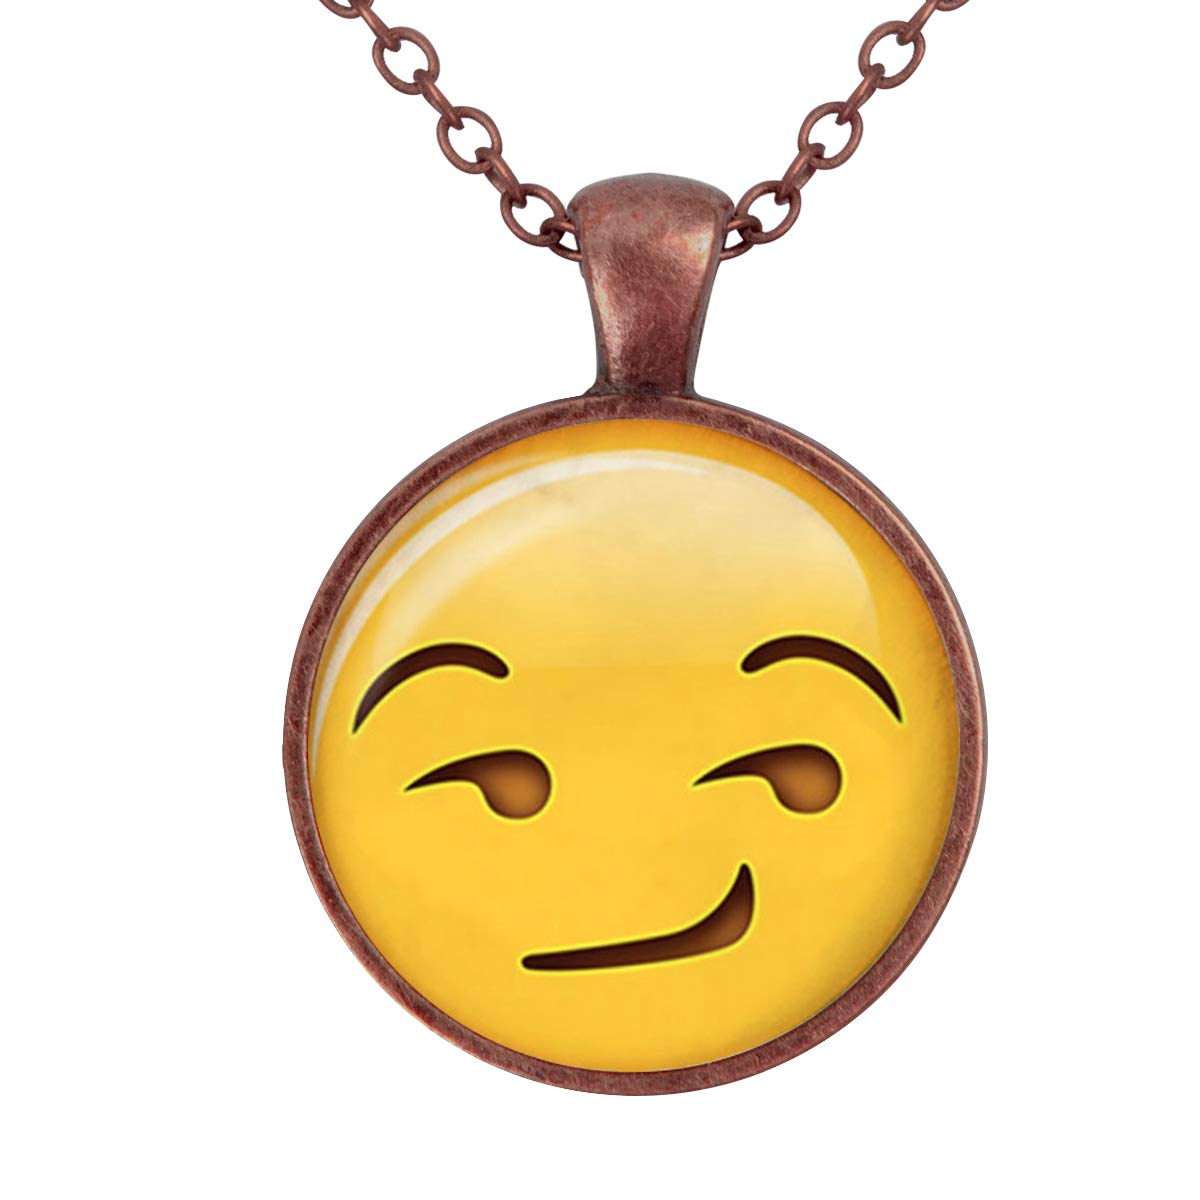 Lightrain Emoji Face Sinister Pendant Necklace Vintage Bronze Chain Statement Necklace Handmade Jewelry Gifts